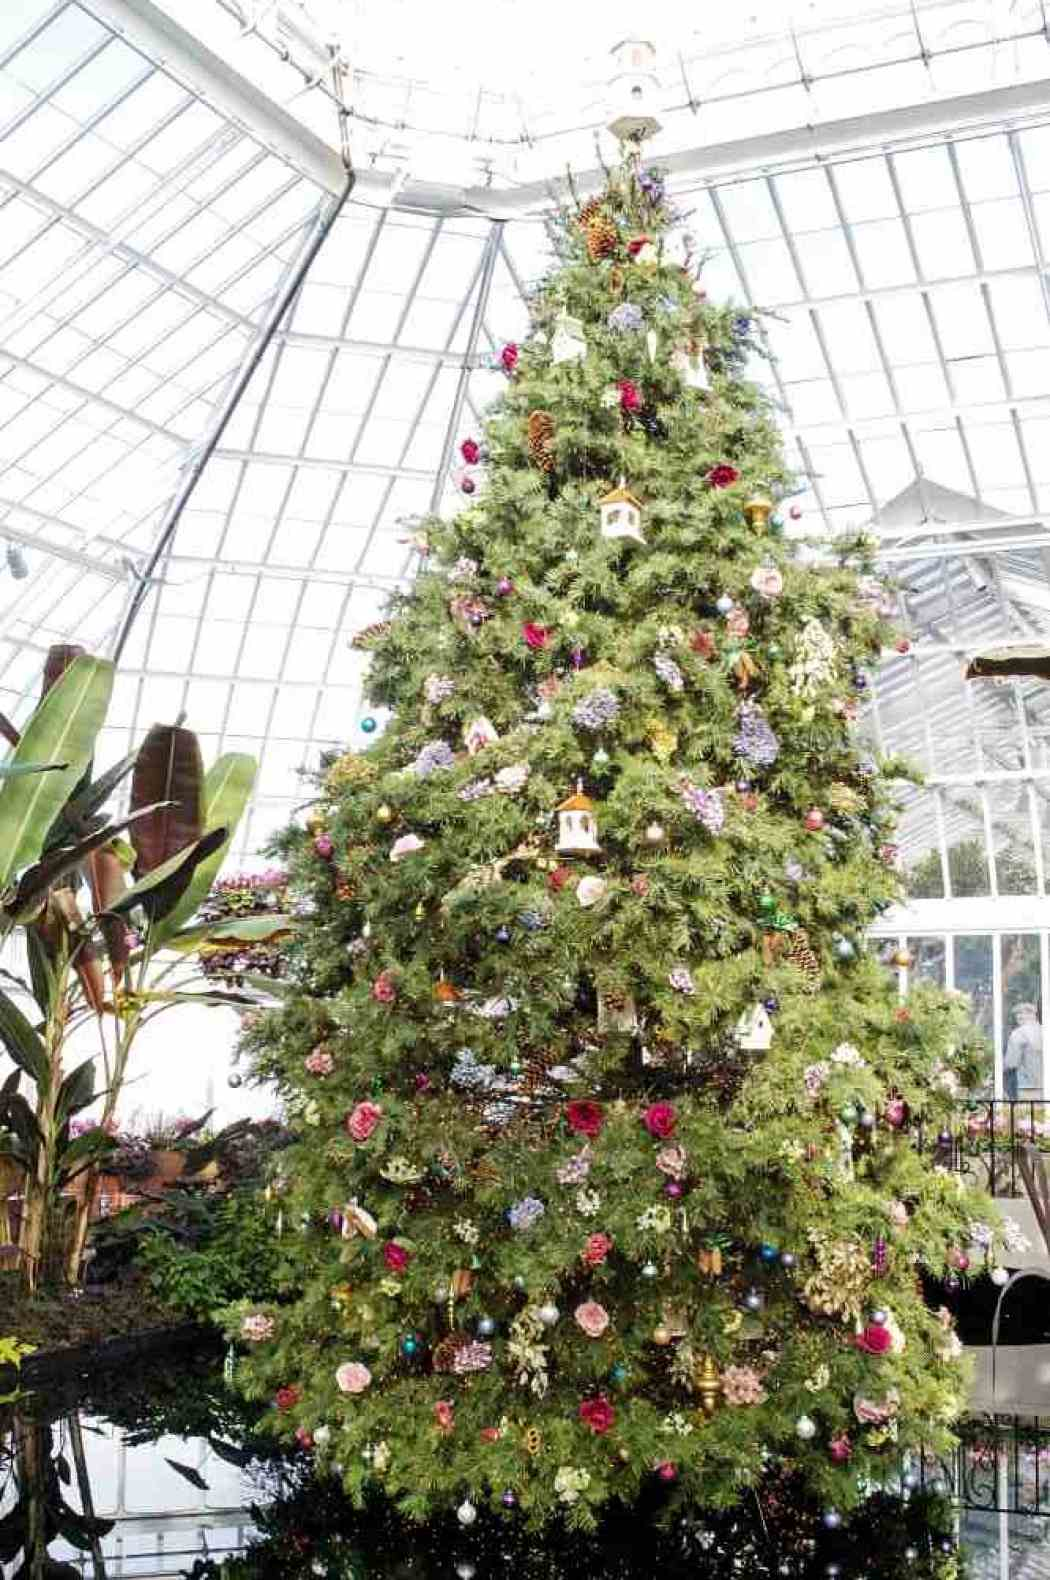 Winter Flower Show 2004: Nature's Holiday